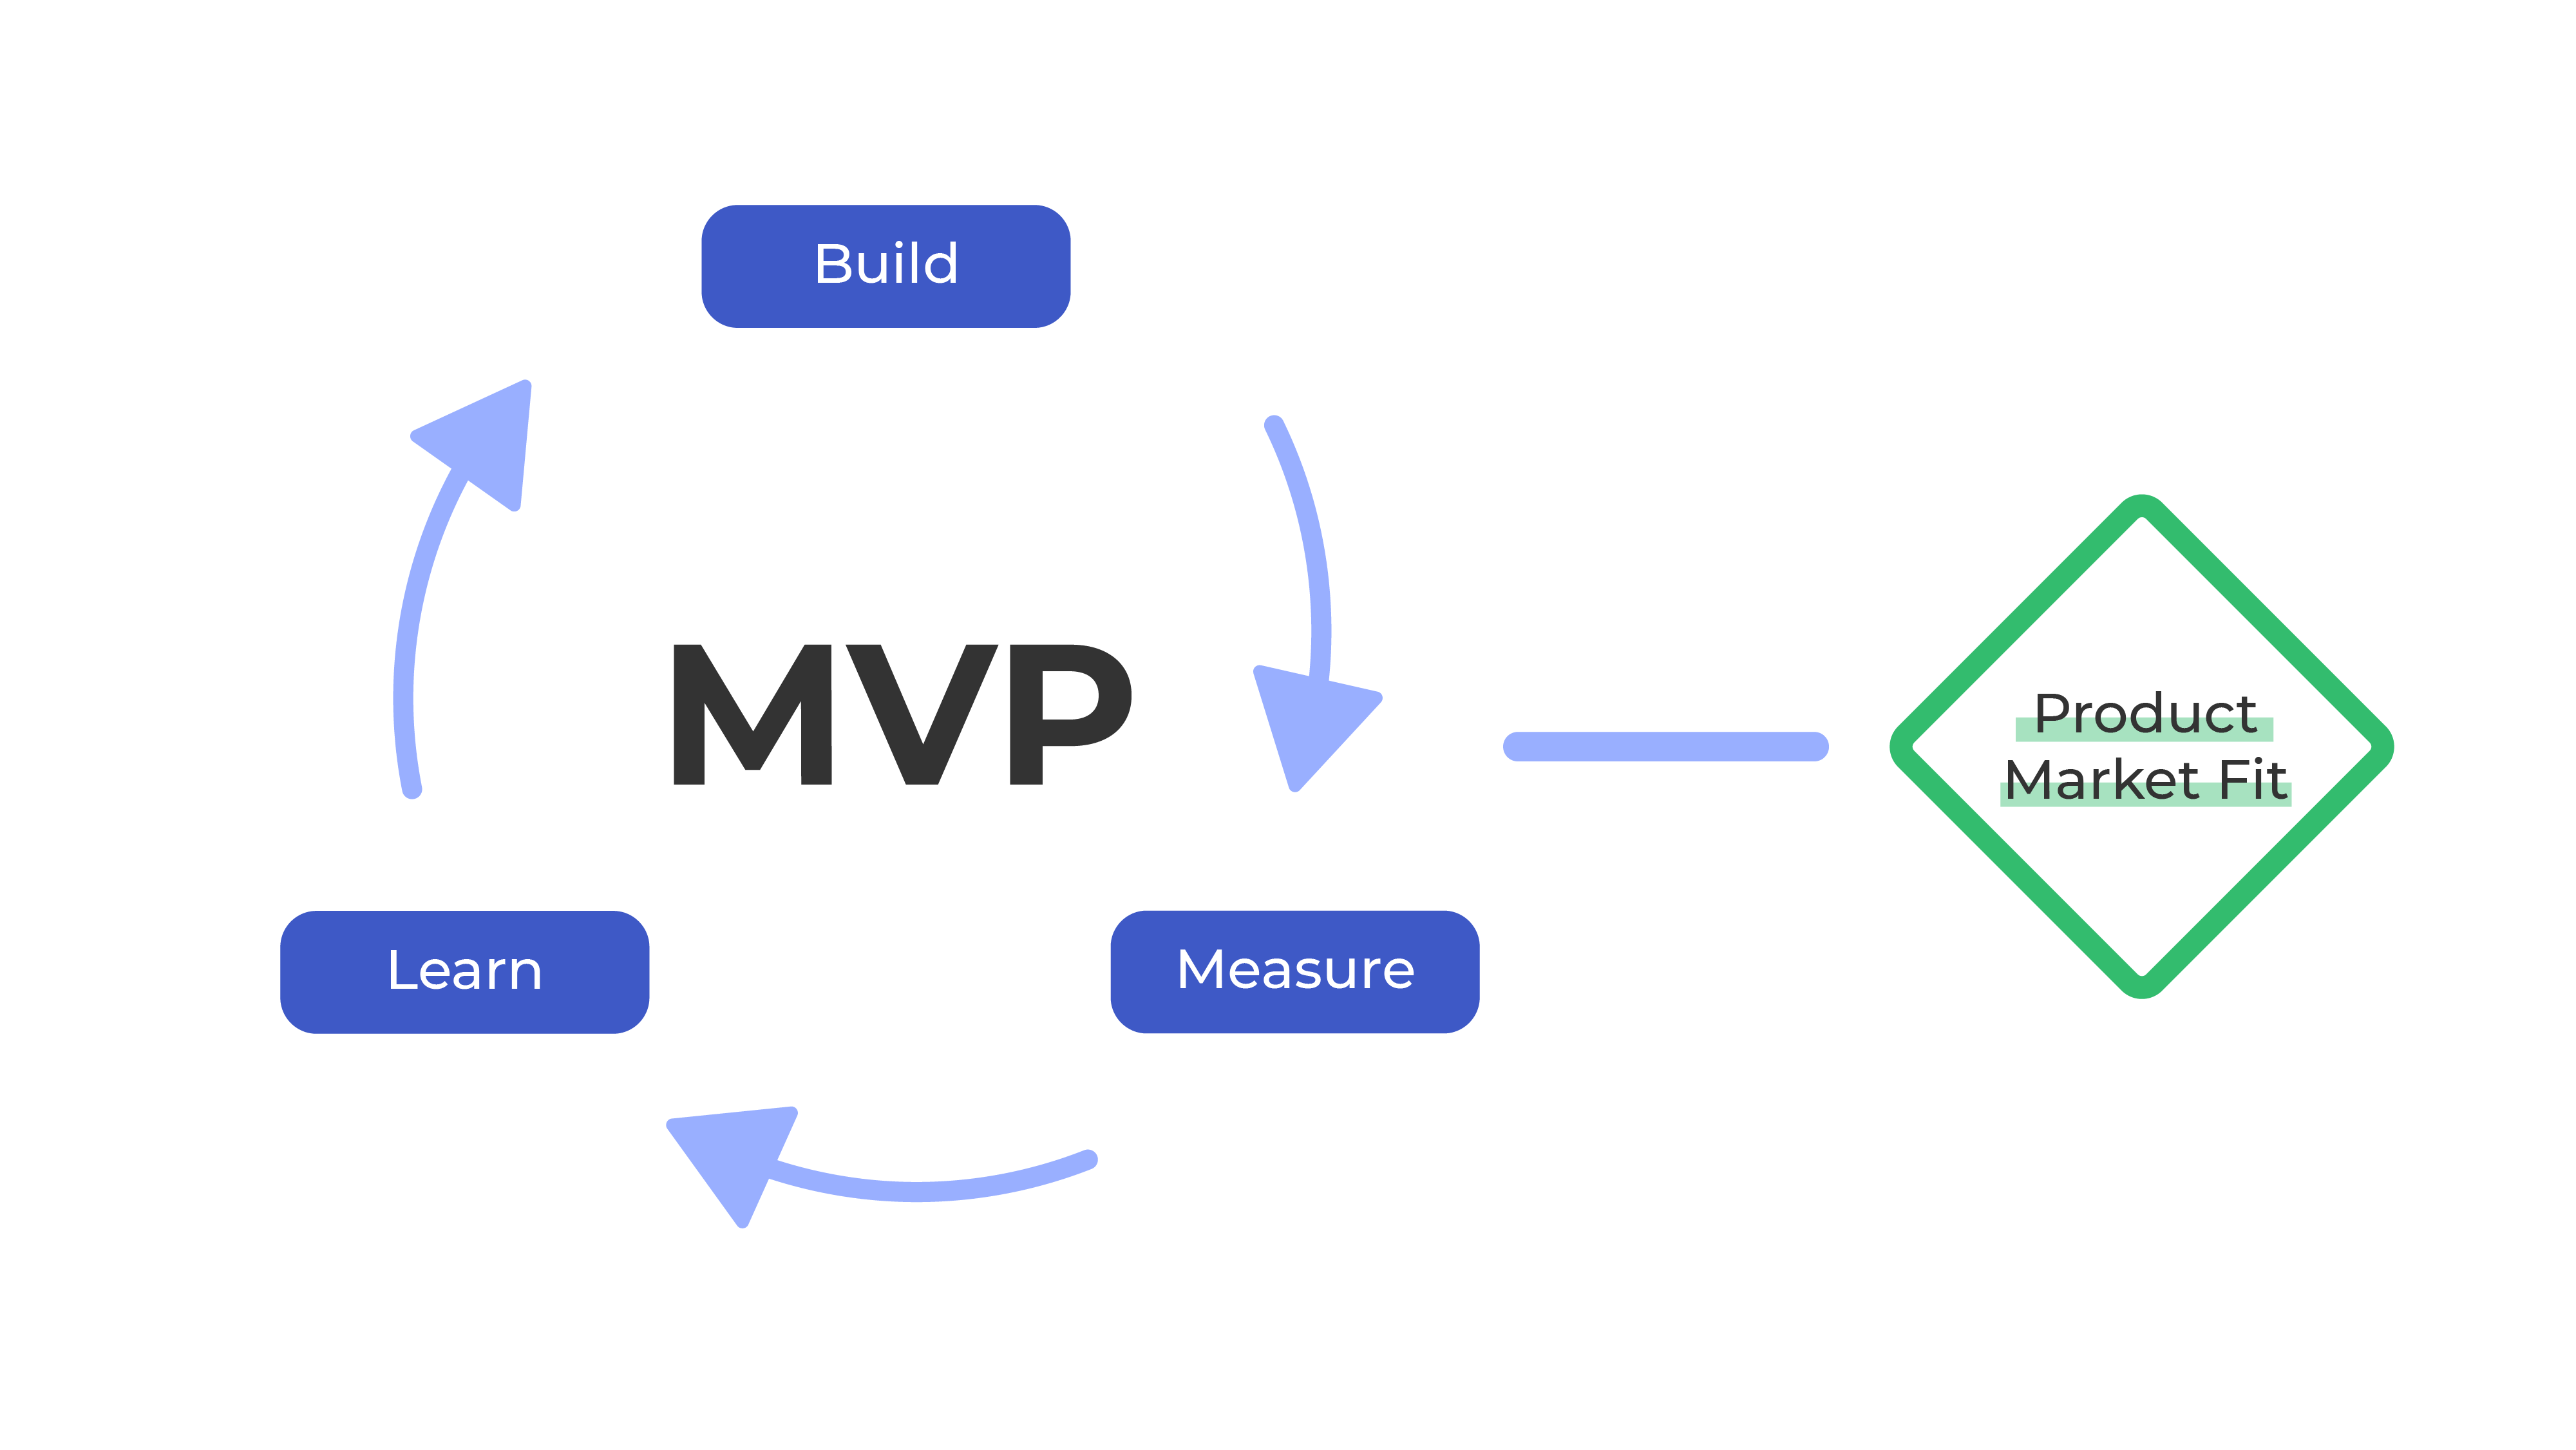 When the minimum viable product (MPV) meets the product-market fit